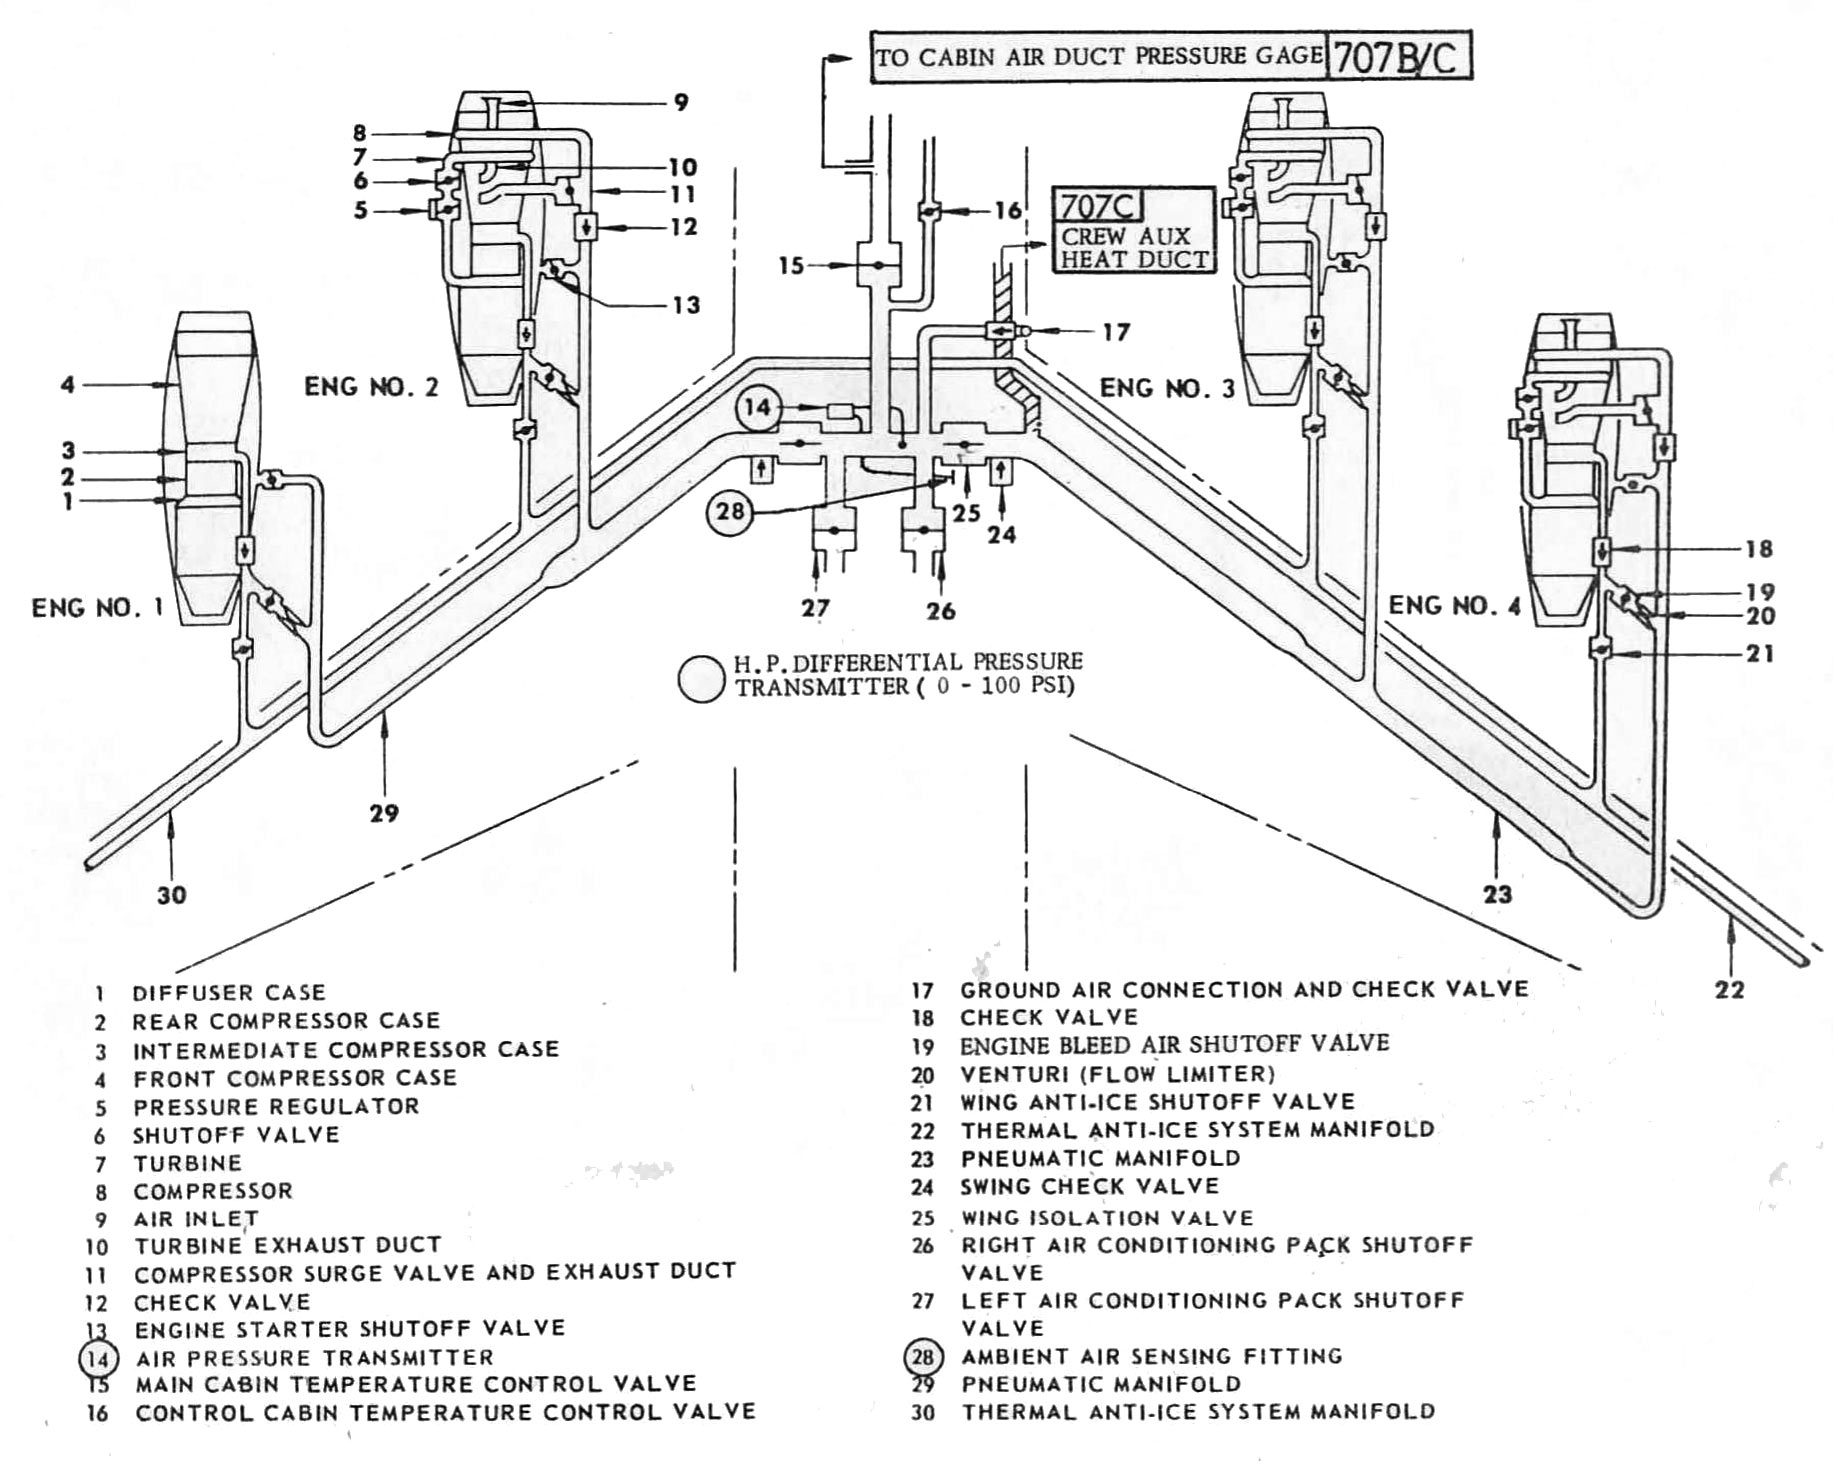 Pneumatic System The Boeing 707 Experience